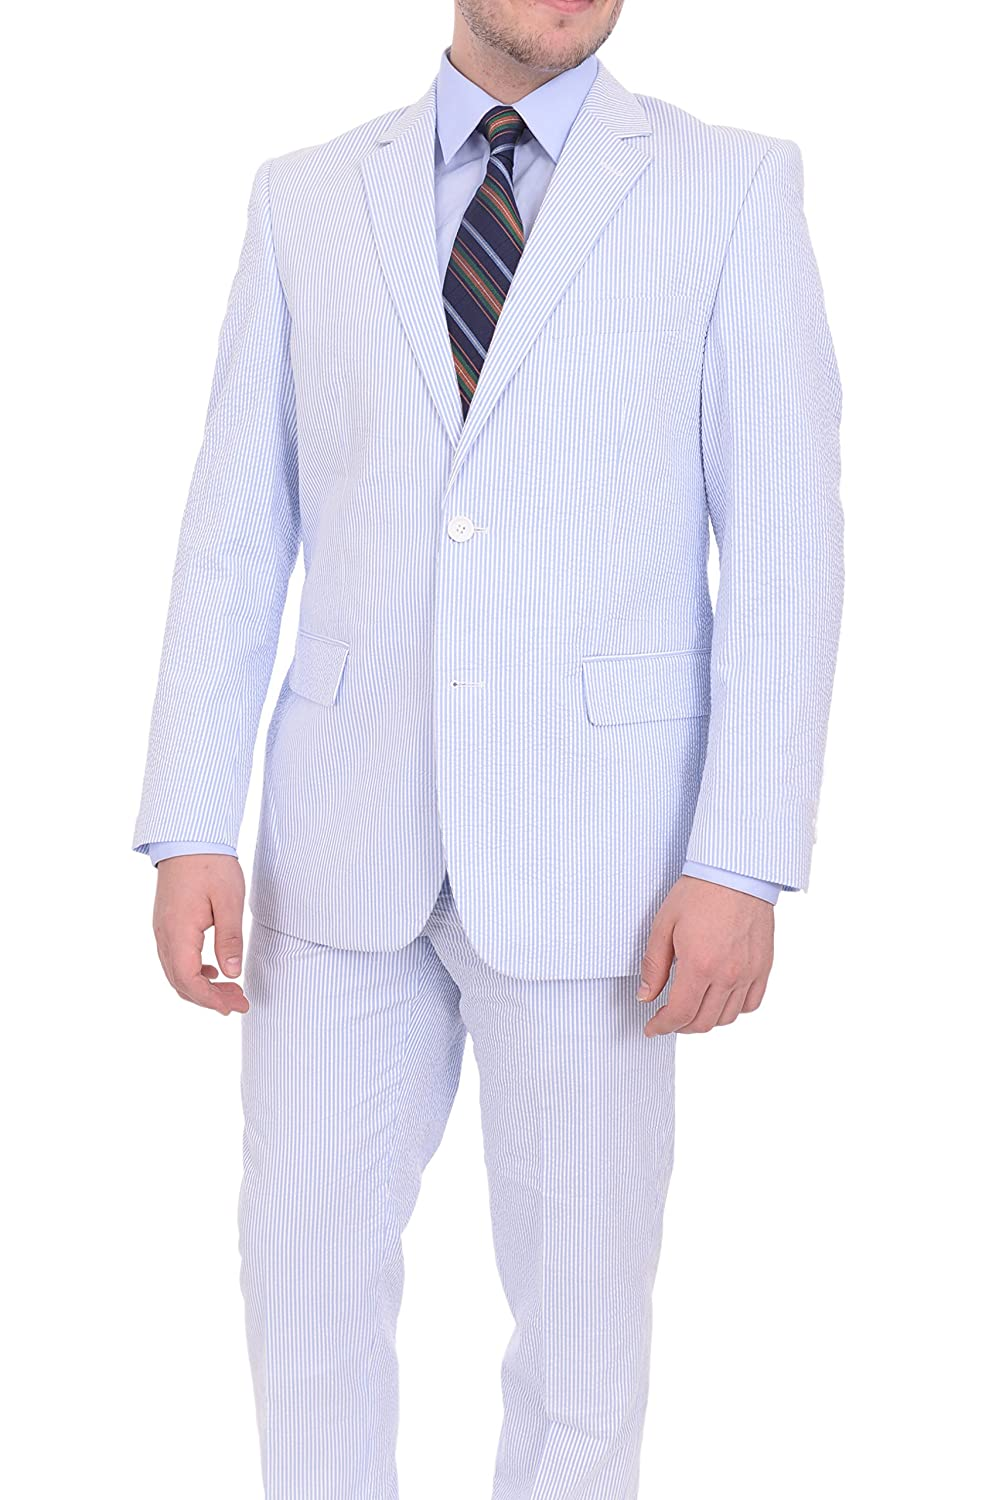 Emigre Mens Blue And White Striped Seersucker Two Button Cotton Suit 804-20-Blue-1